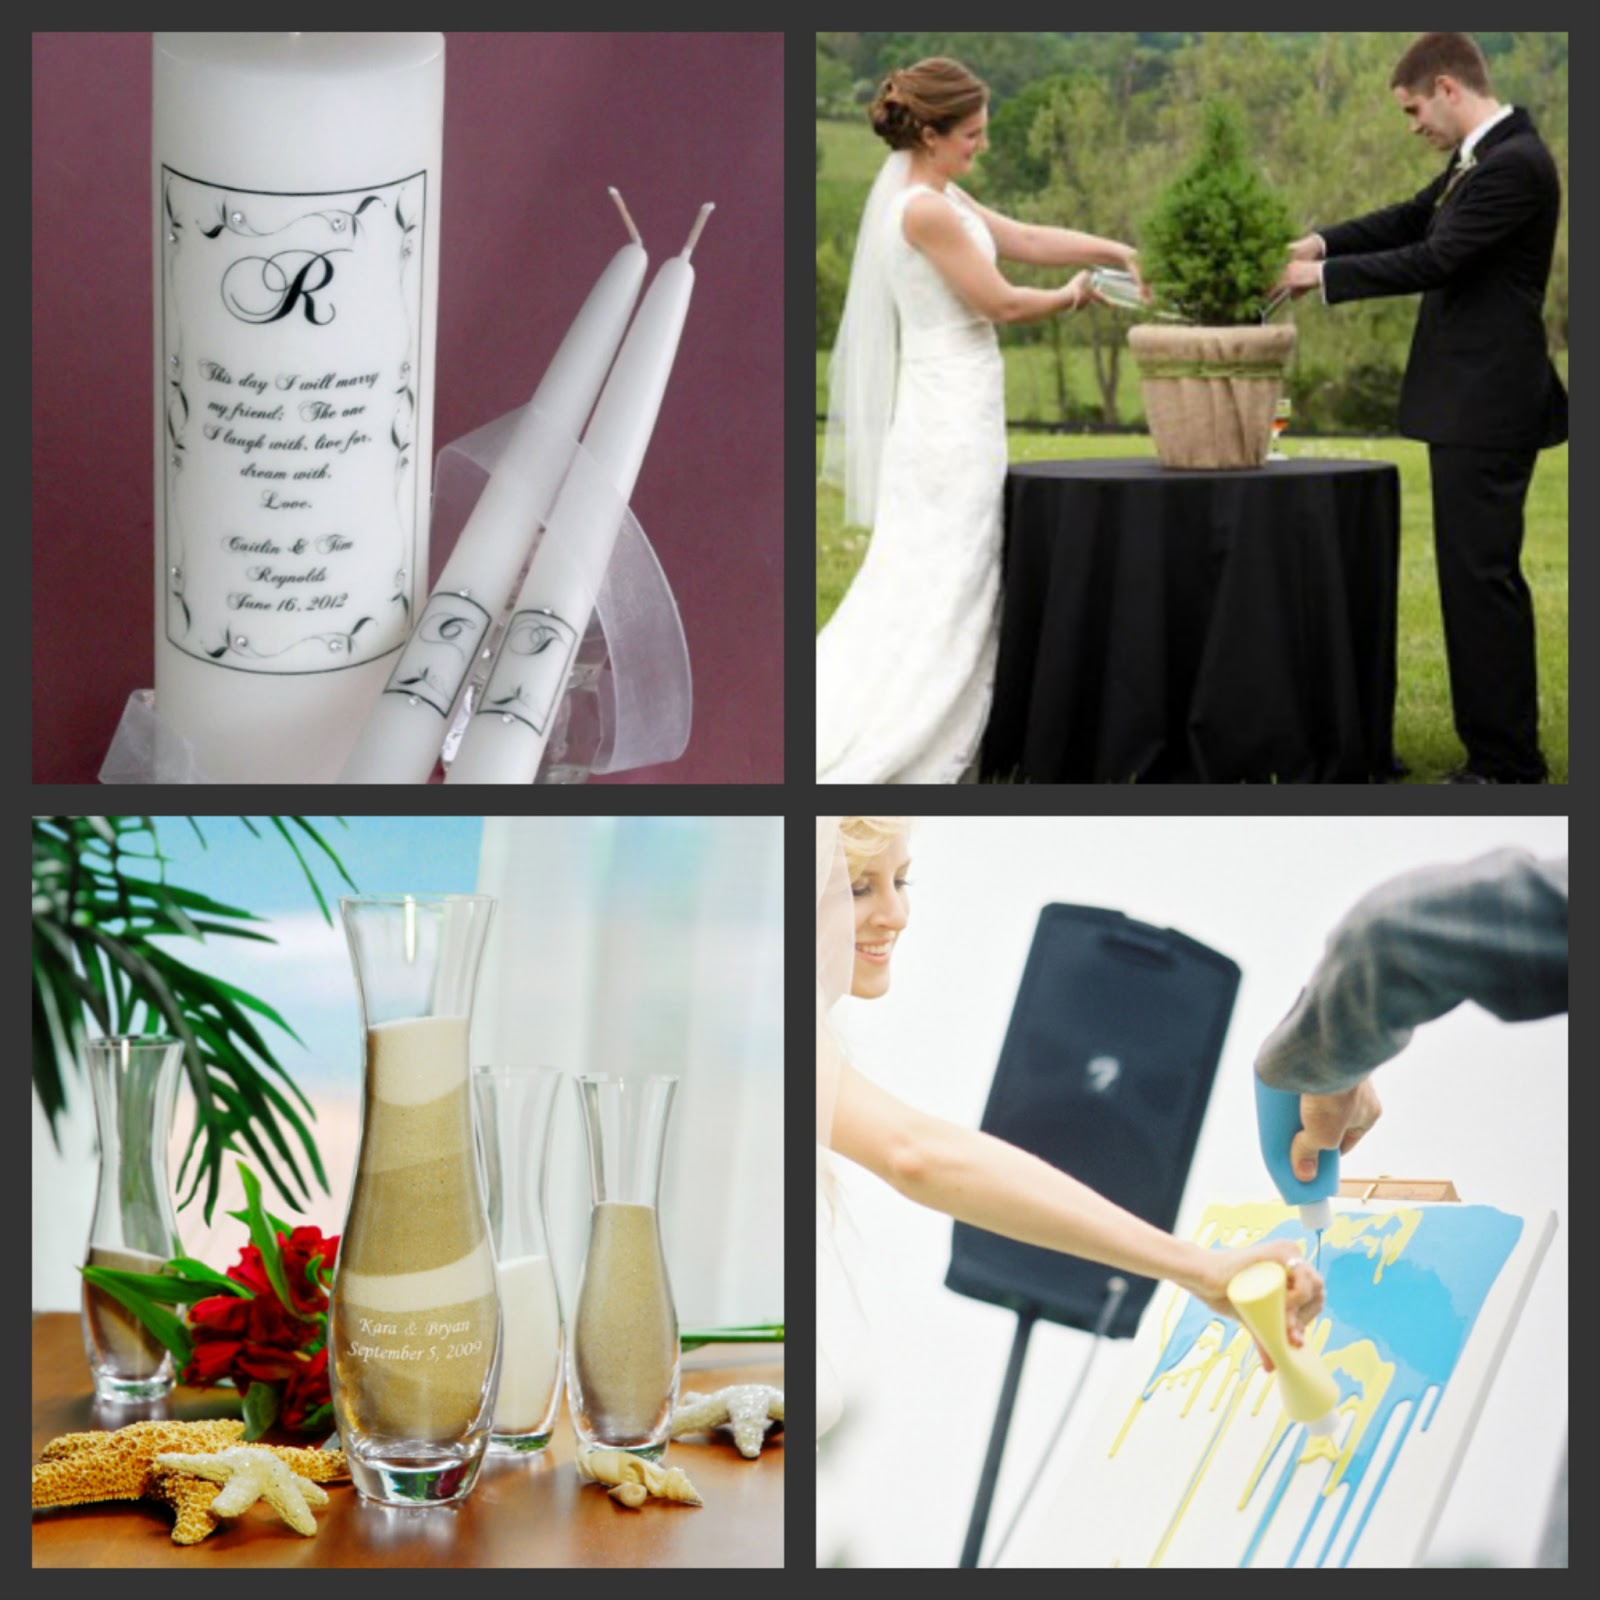 Ideas For A Fun Wedding: Weddings Are Fun Blog: Unity Ceremony Ideas For Your Wedding